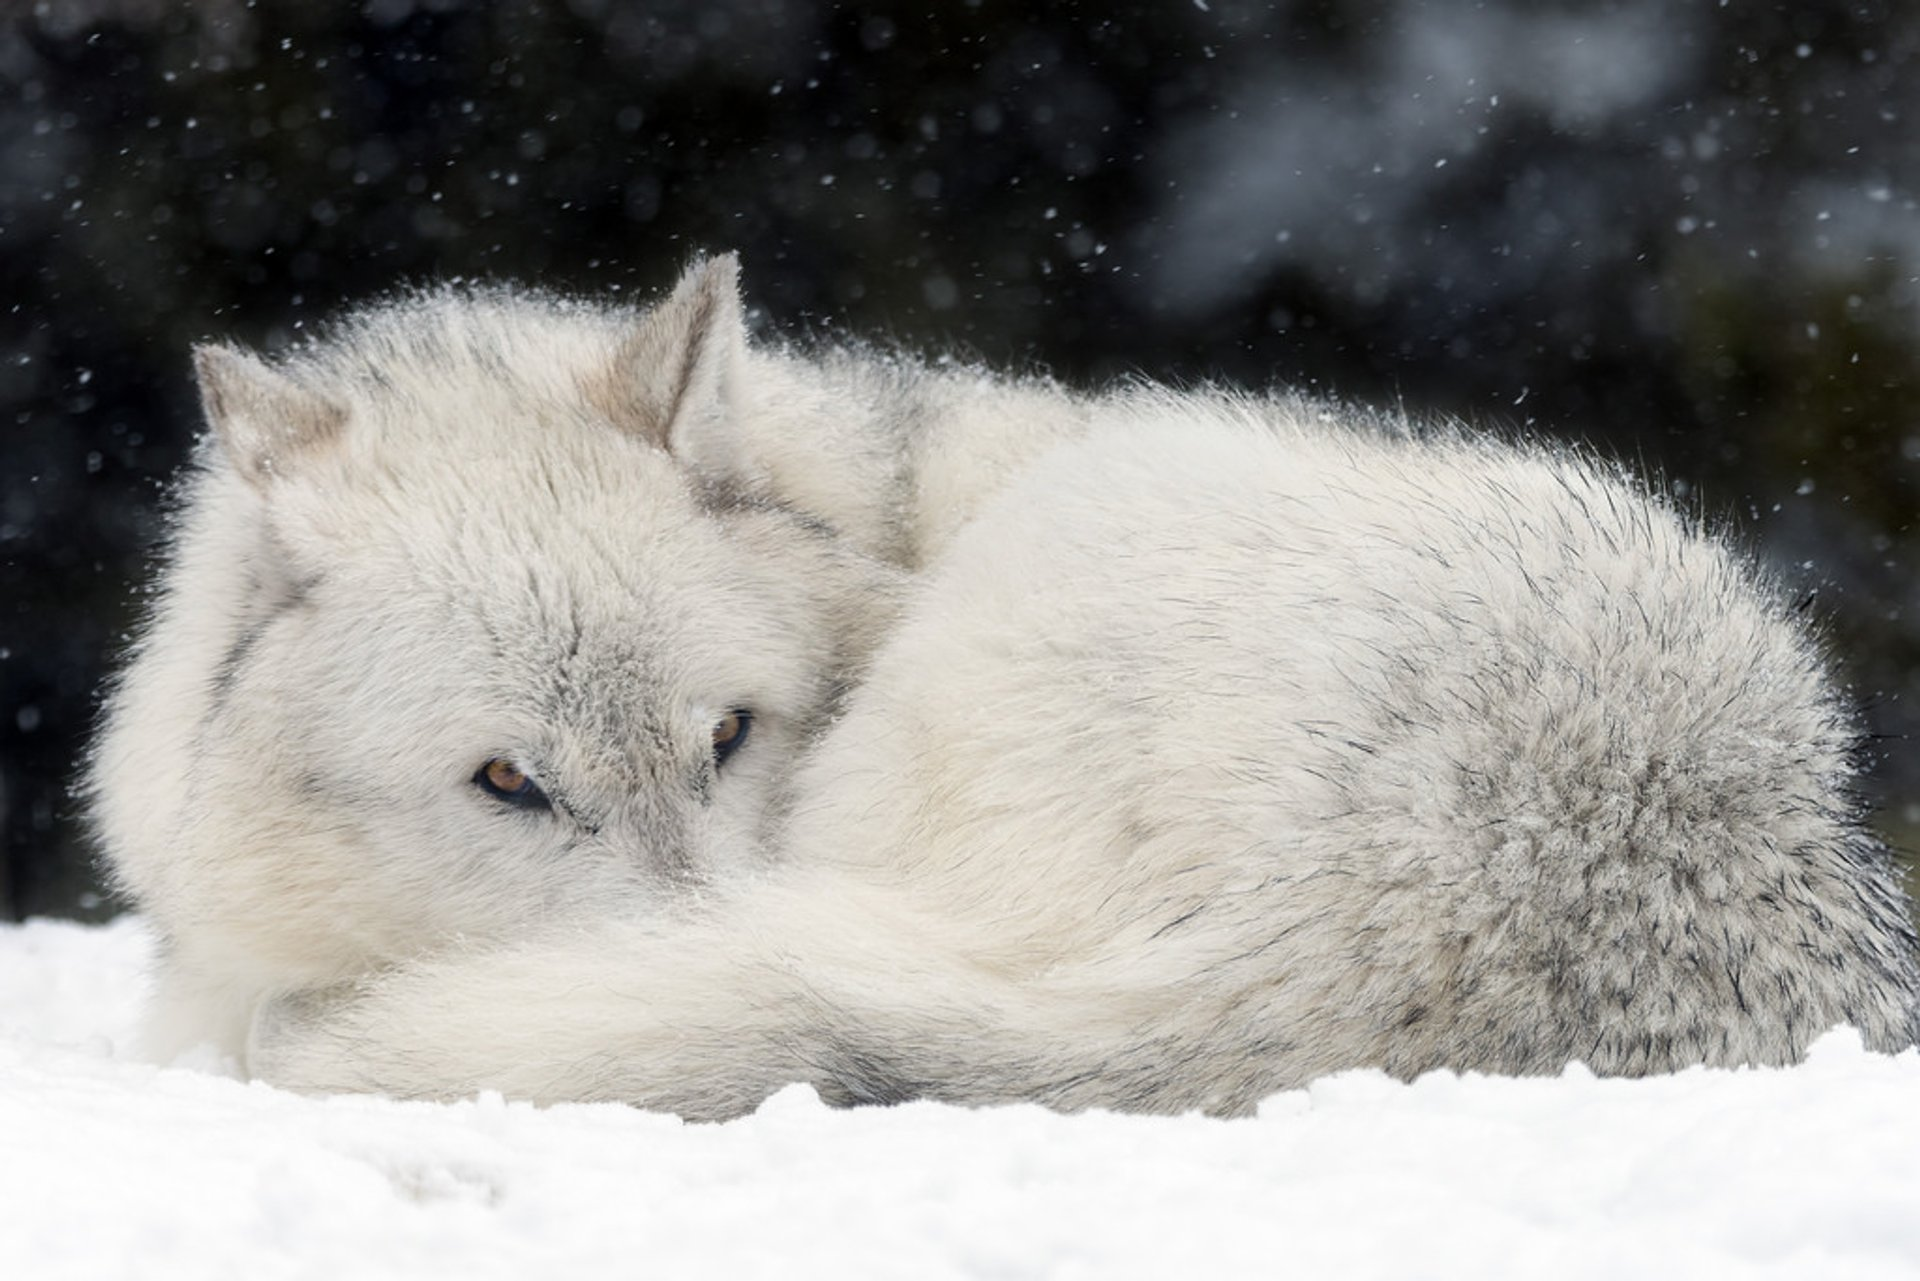 Wolves in Yellowstone National Park 2019 - Best Time